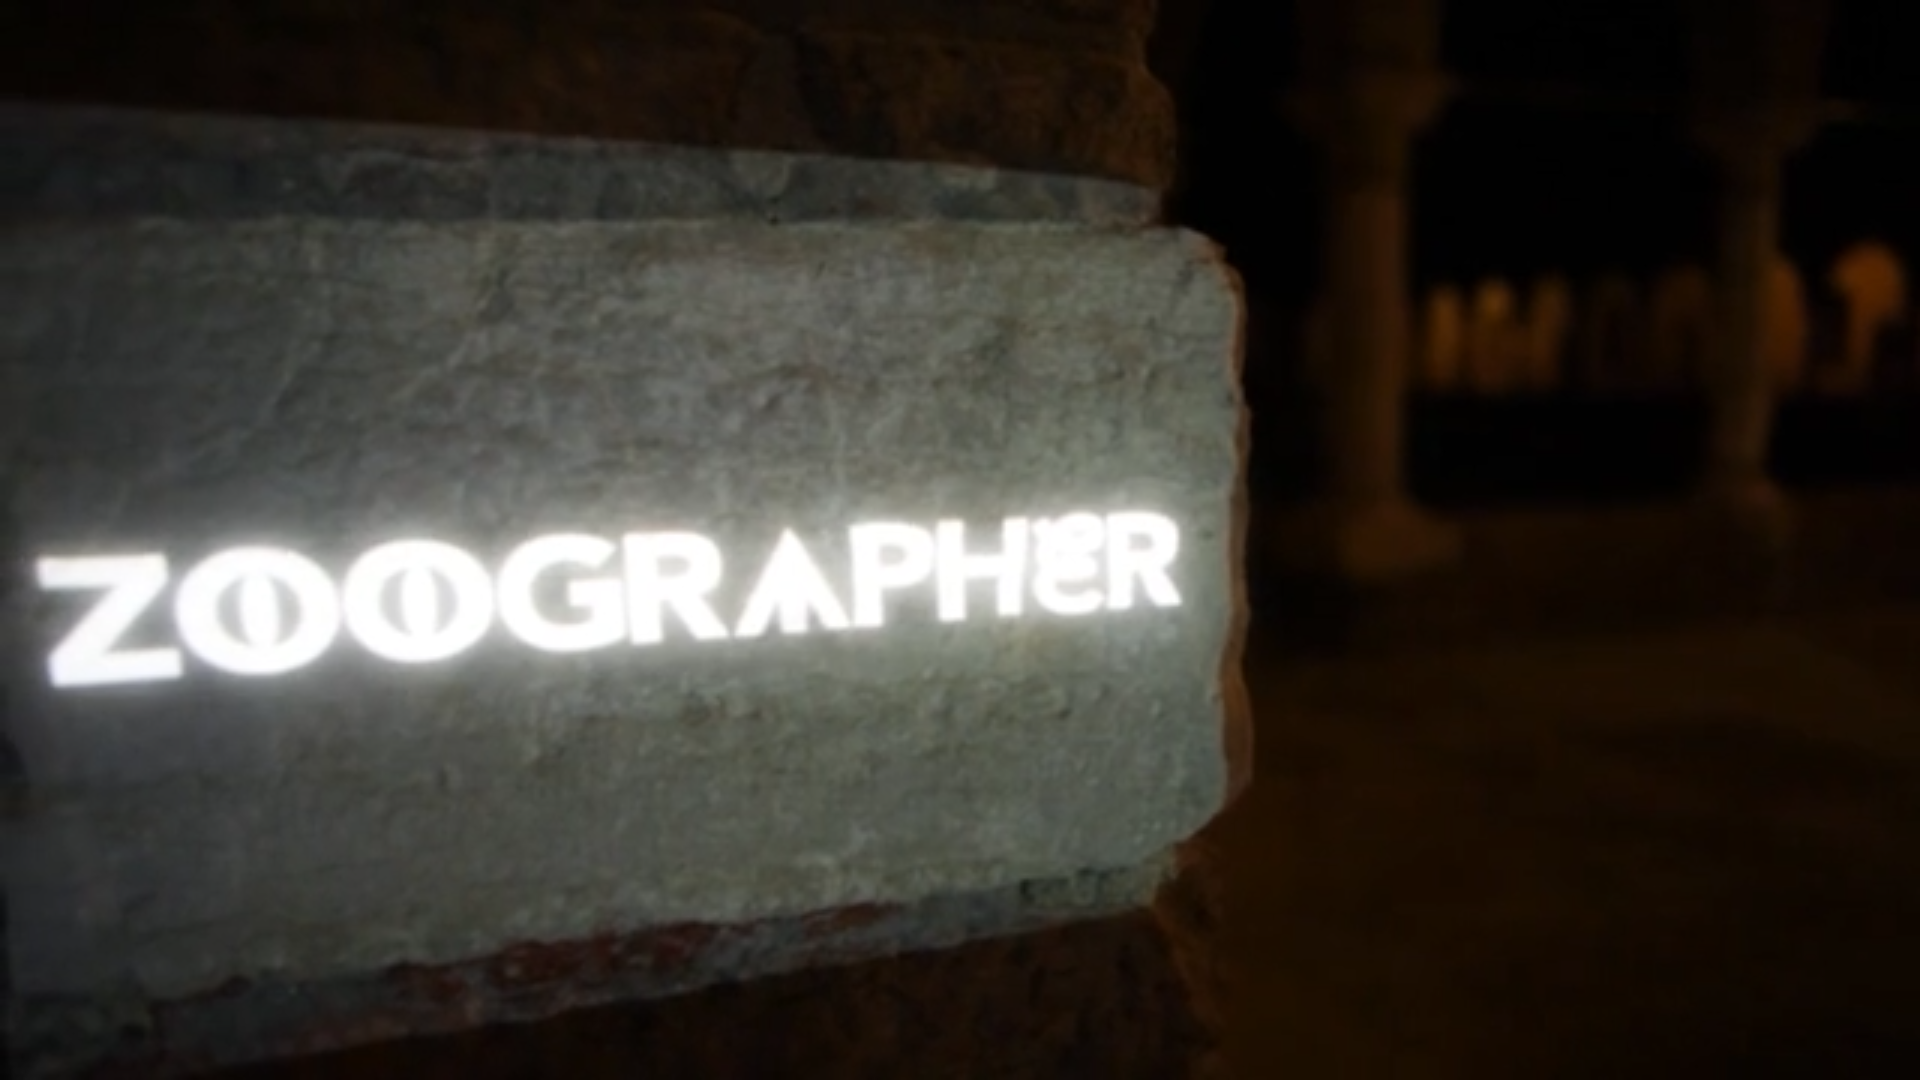 ZOOGRAPHER SHOWCASE IN GIUDECCA (VENICE)